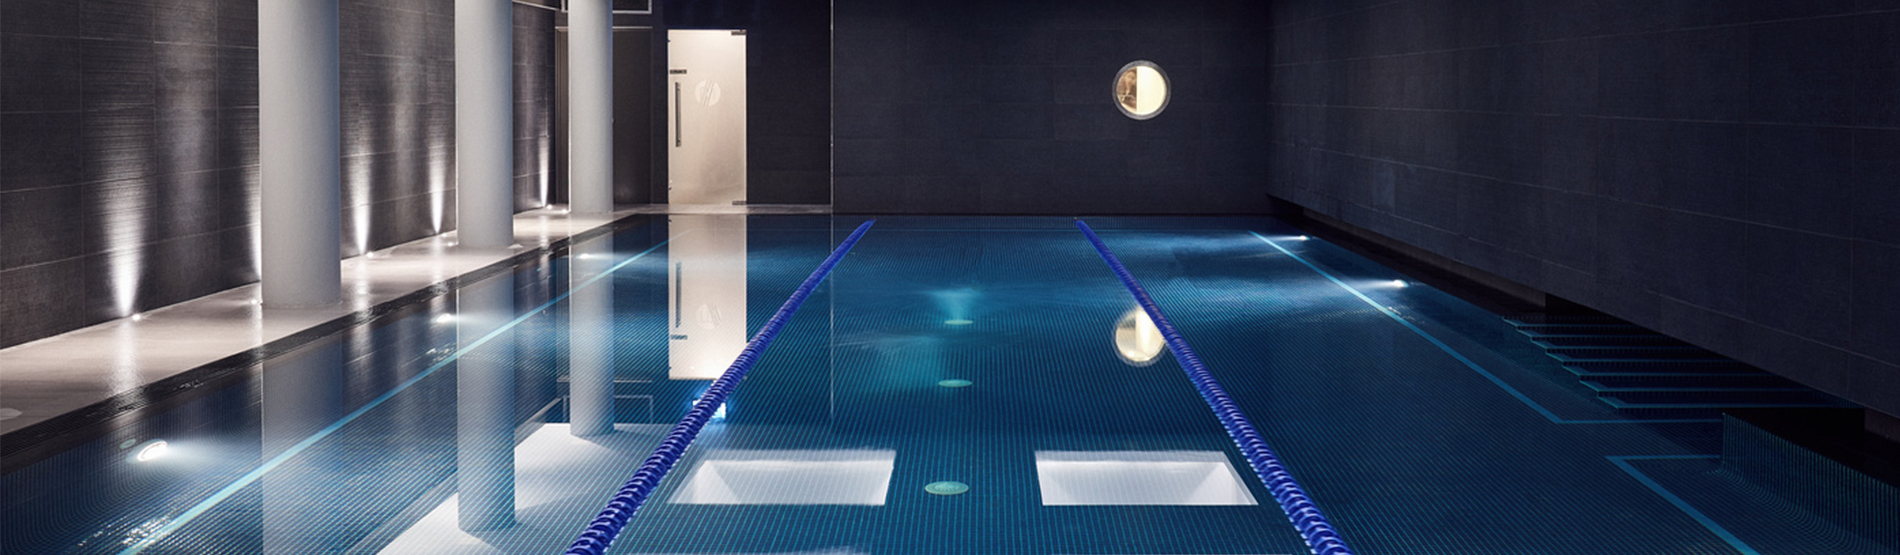 The swimming pool at The Marylebone